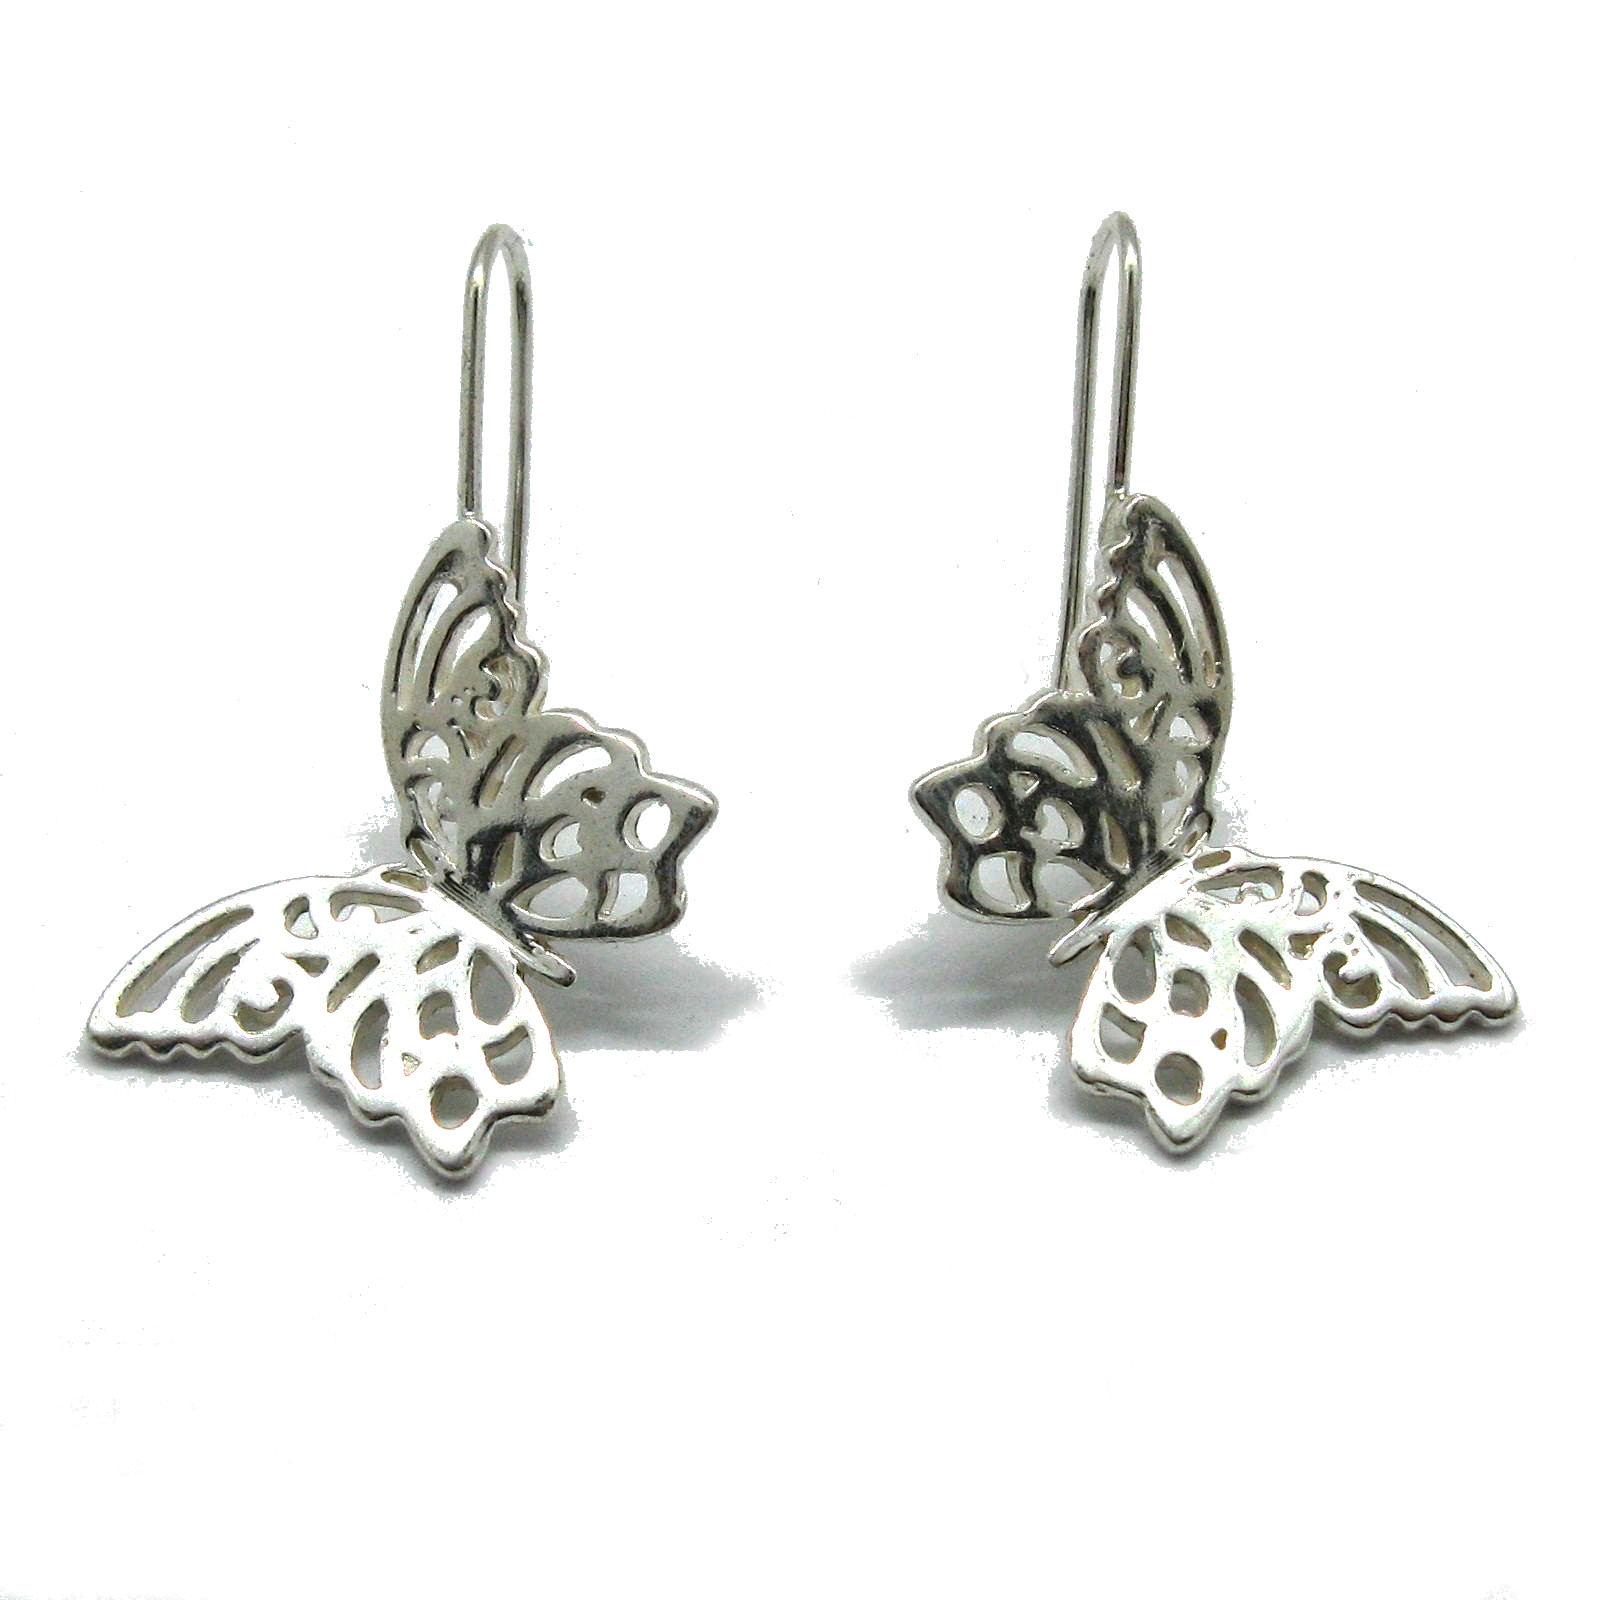 Silver earrings - E000739